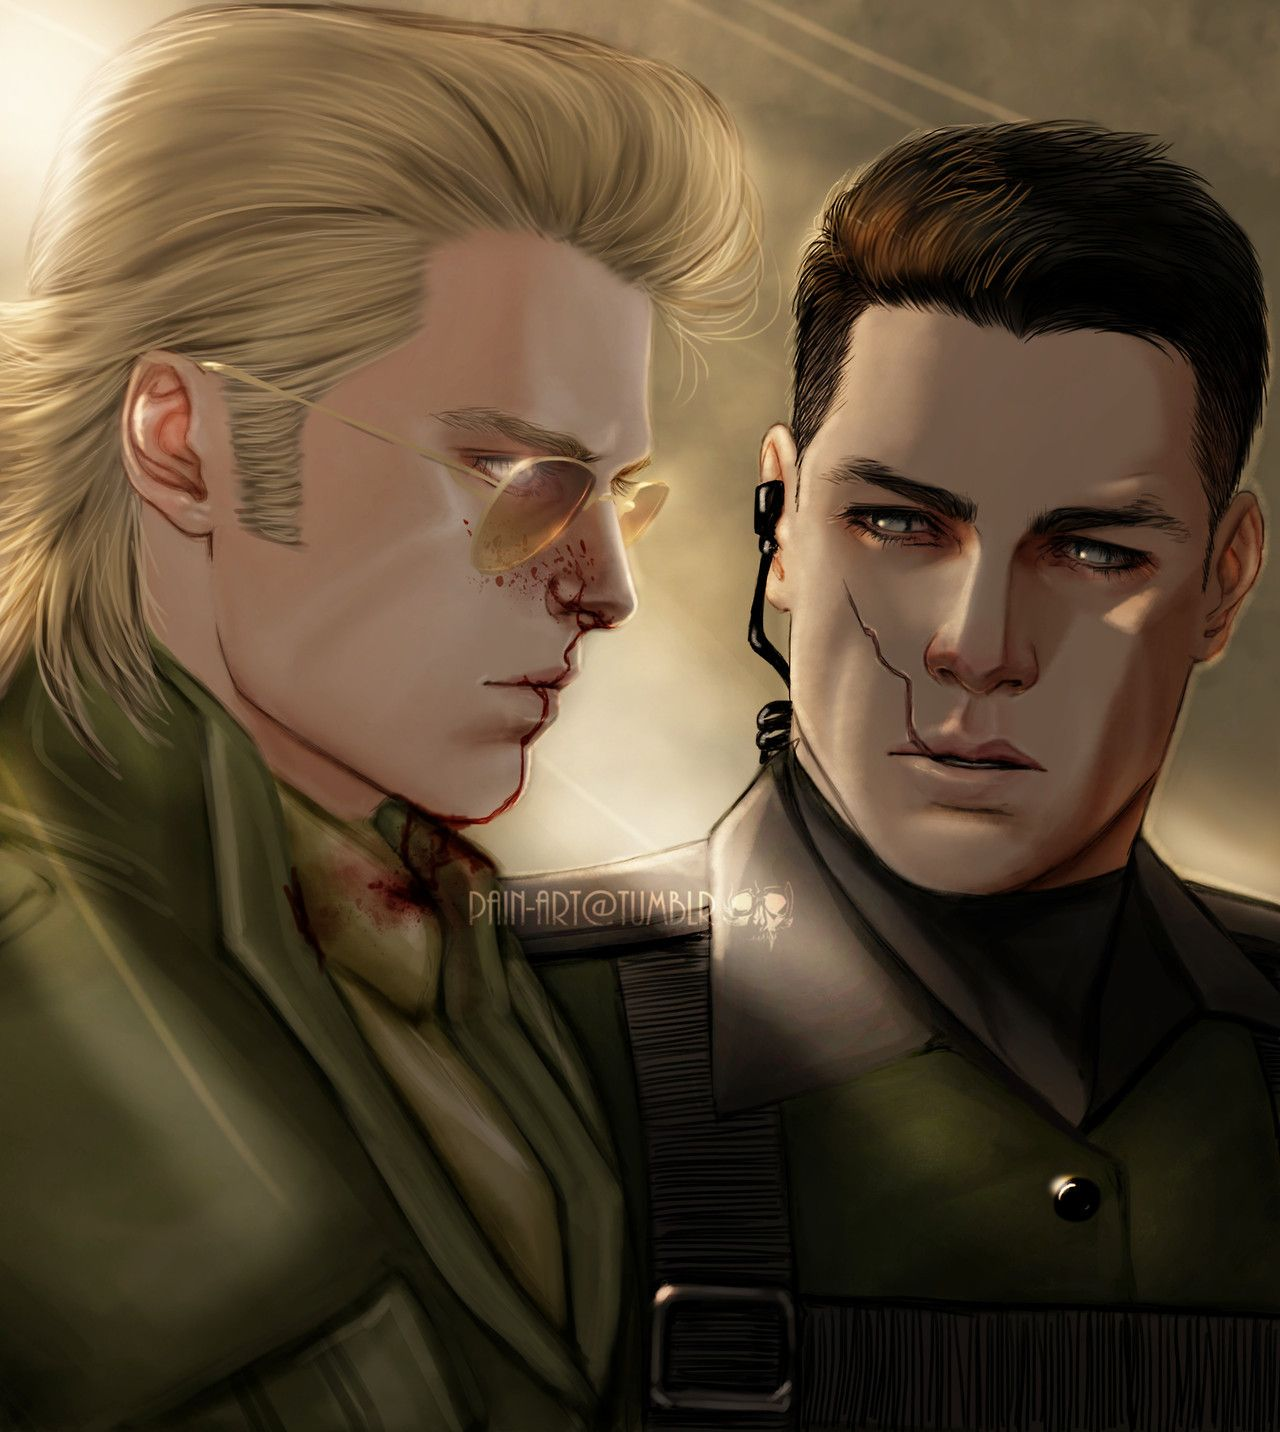 Pin En Metal Gear Kazuhira miller (カズヒラ・ミラー, kazuhira mirā?), also known as mcdonell benedict miller and master miller, was the subcommander of both the militaires sans frontières and diamond dogs, and later, the survival trainer of foxhound. pin en metal gear